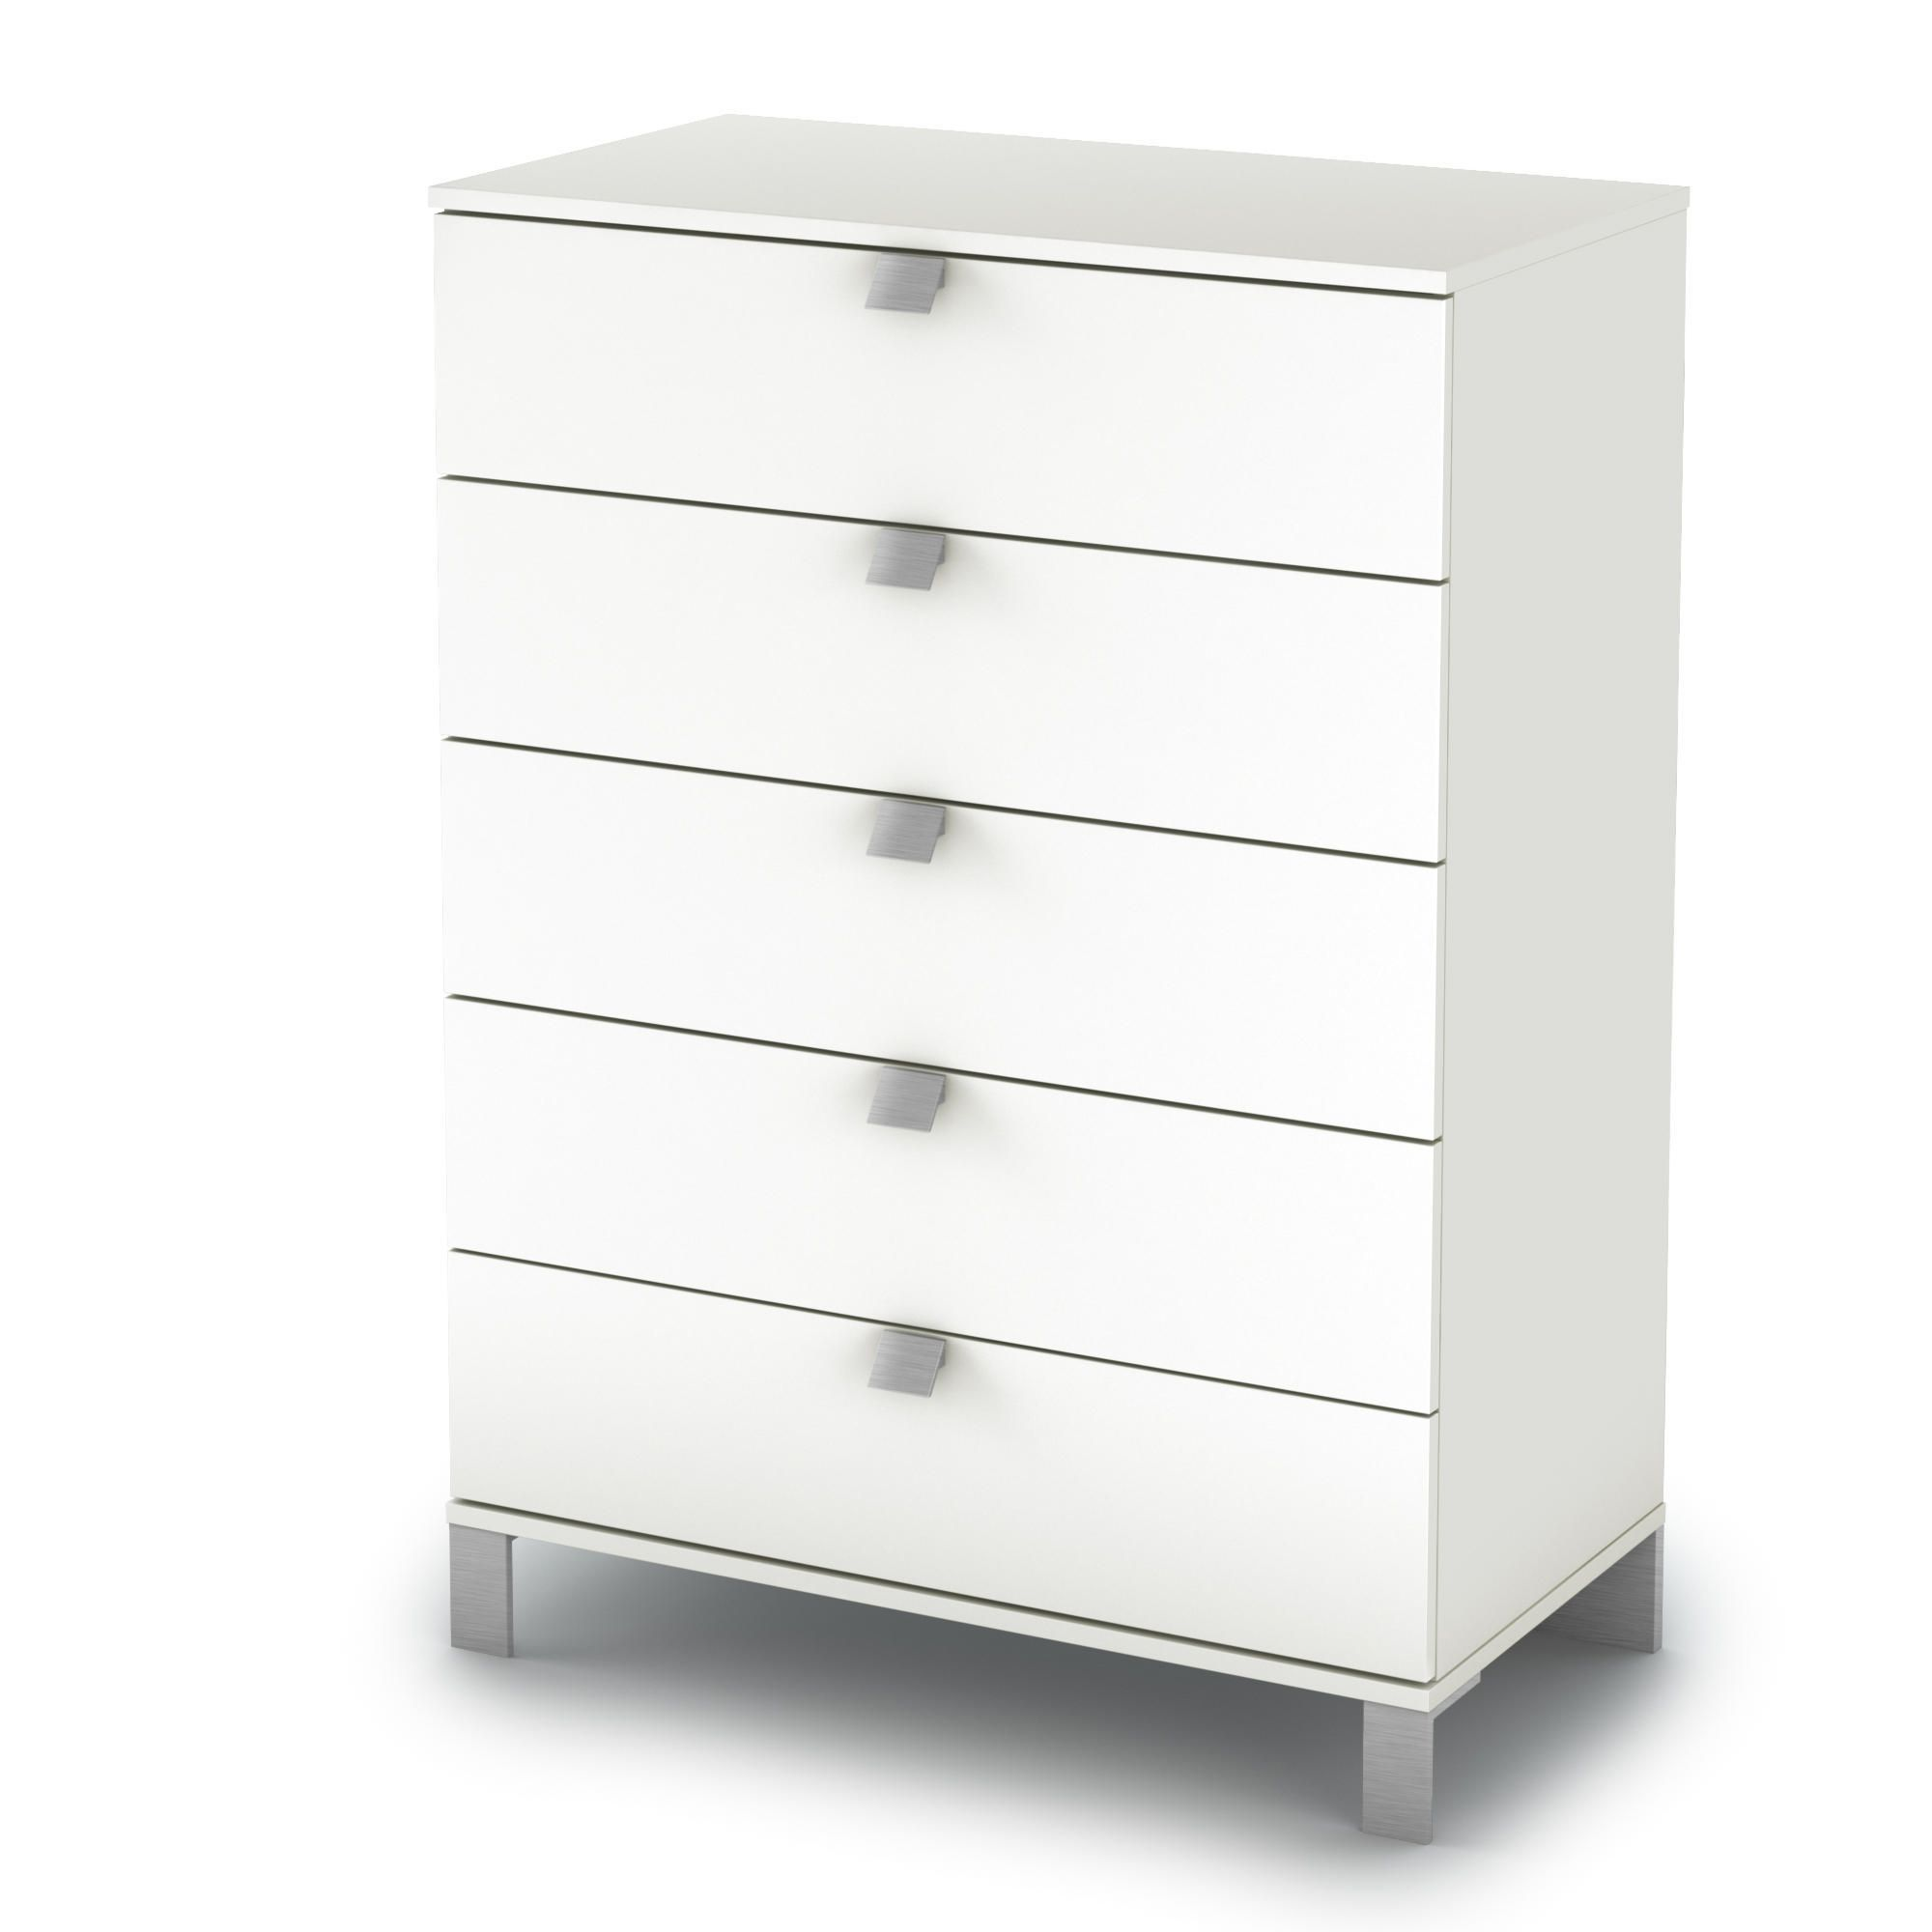 chest kfs world drawers img discovery stores furniture product drawer white